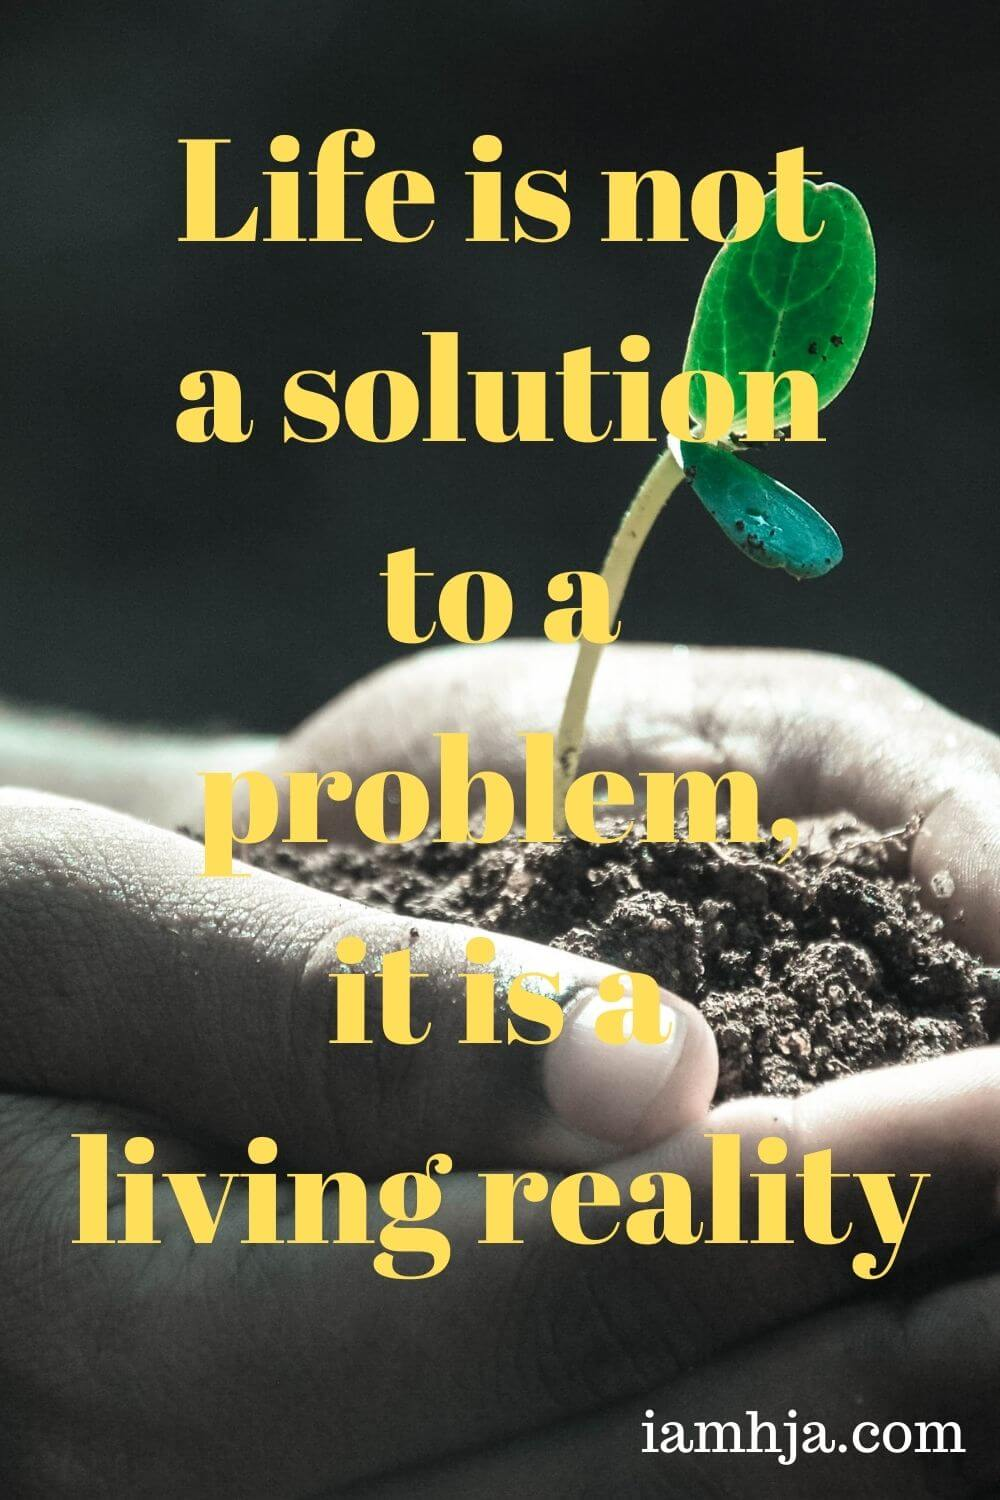 Life is not a solution to a problem, it is a living reality